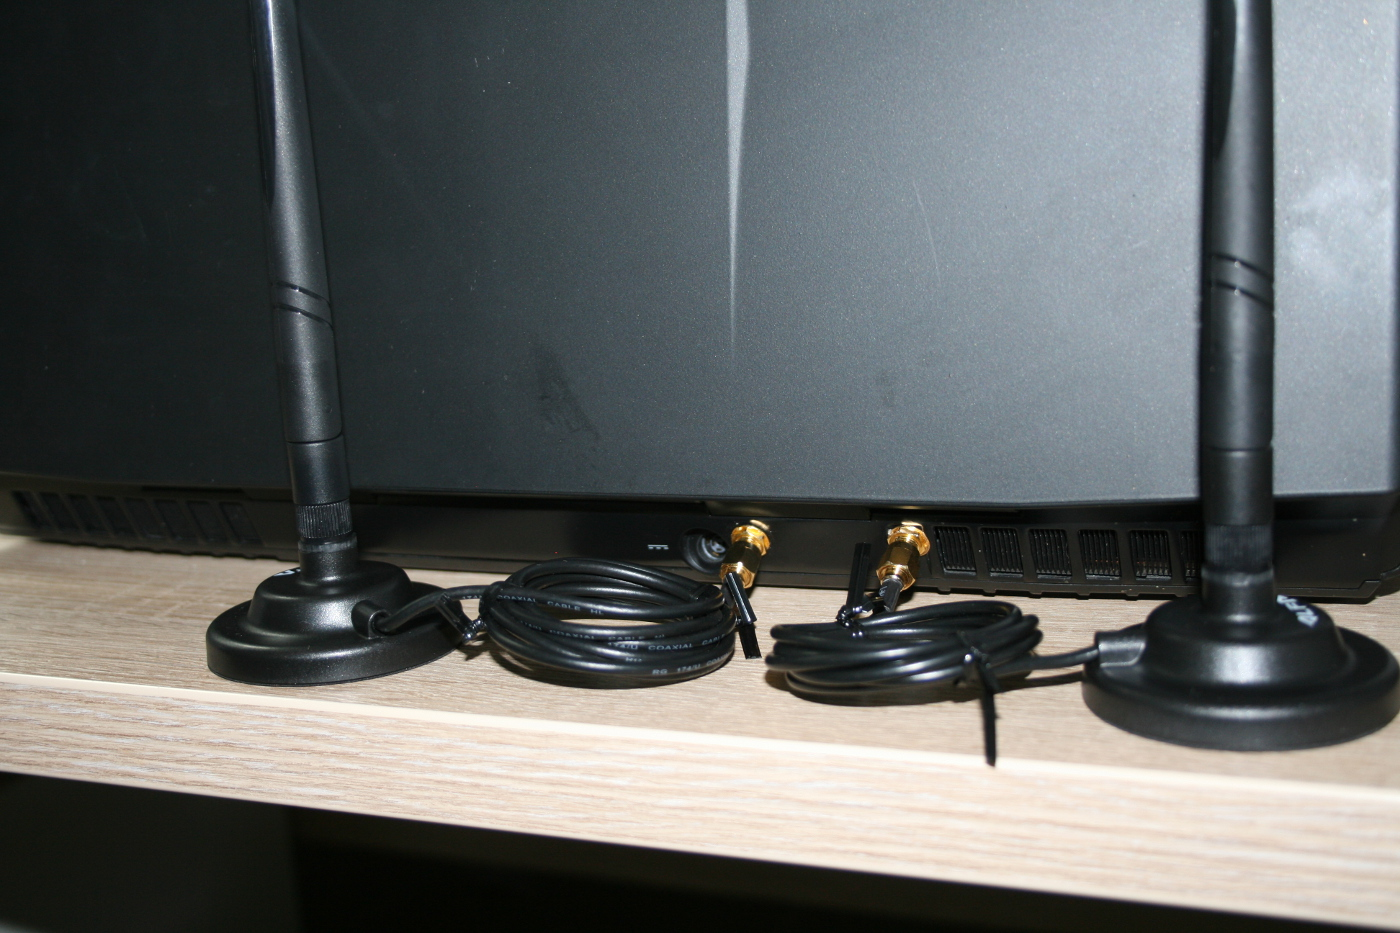 34-montage-avec-supports-antennes